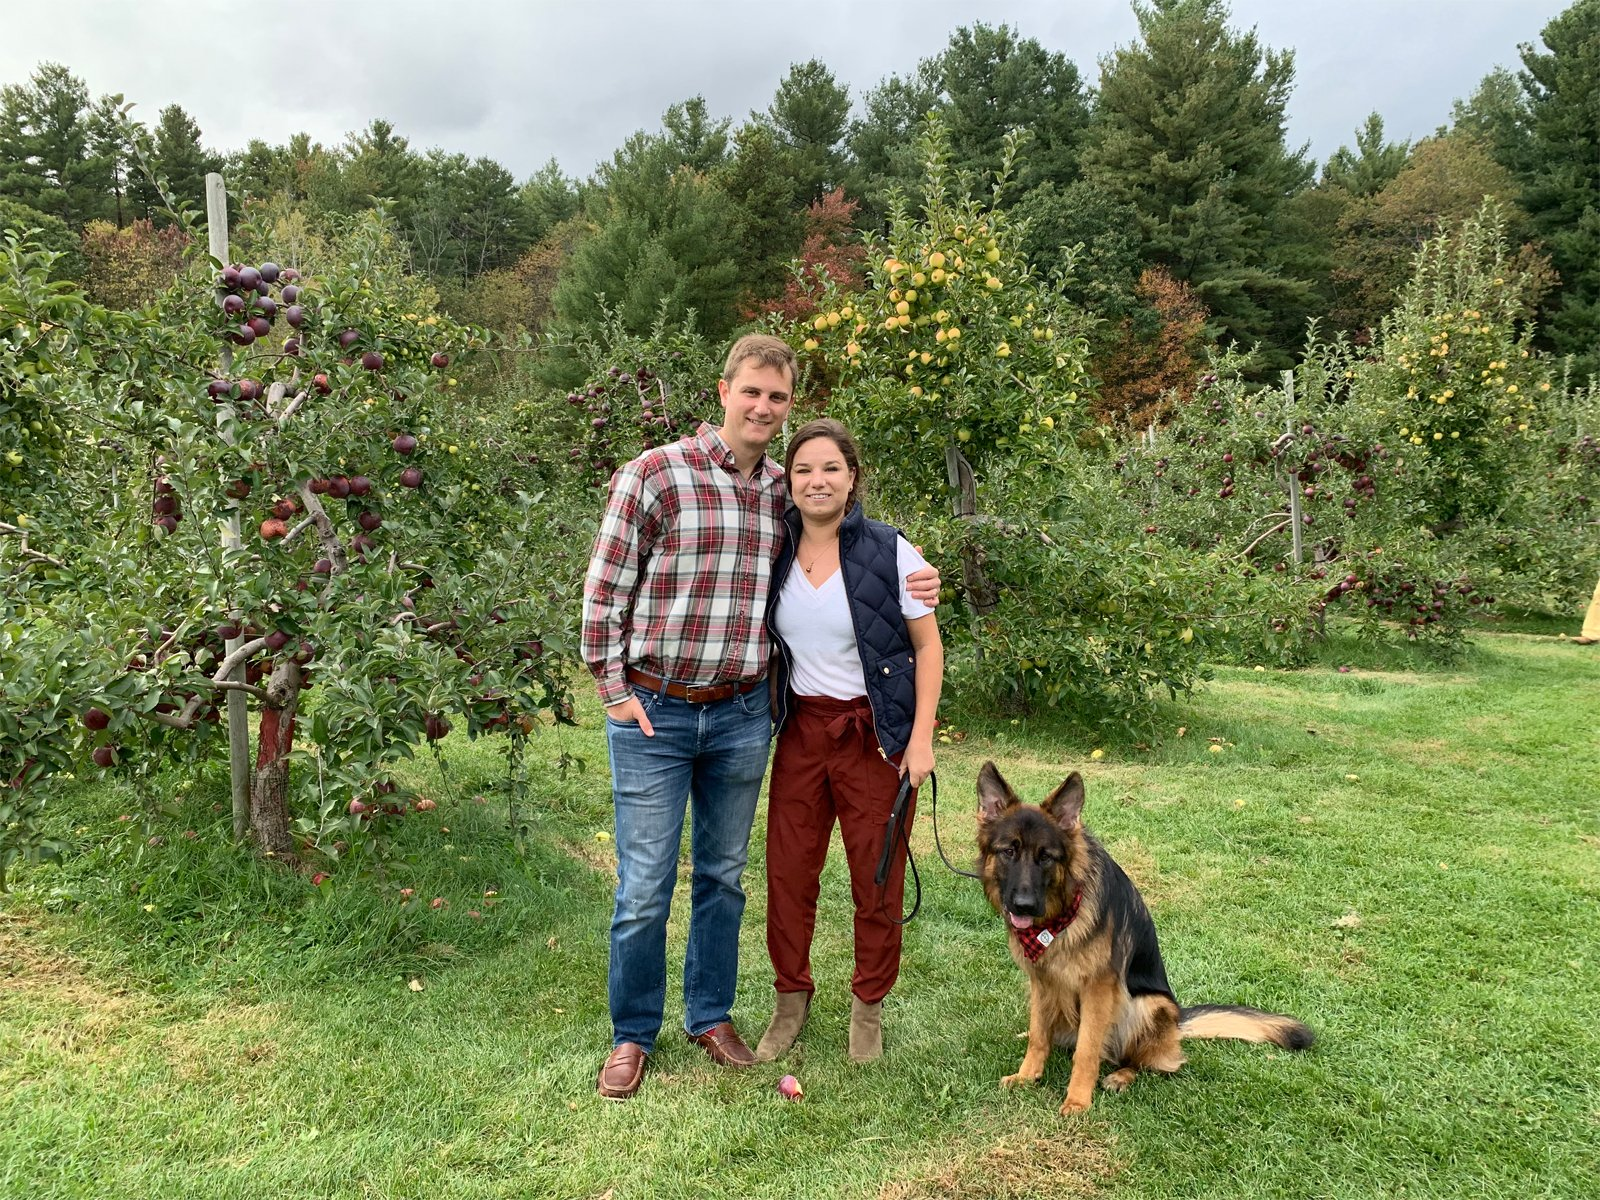 a family apple picking with their dog at an apple orchard in New Engalnd